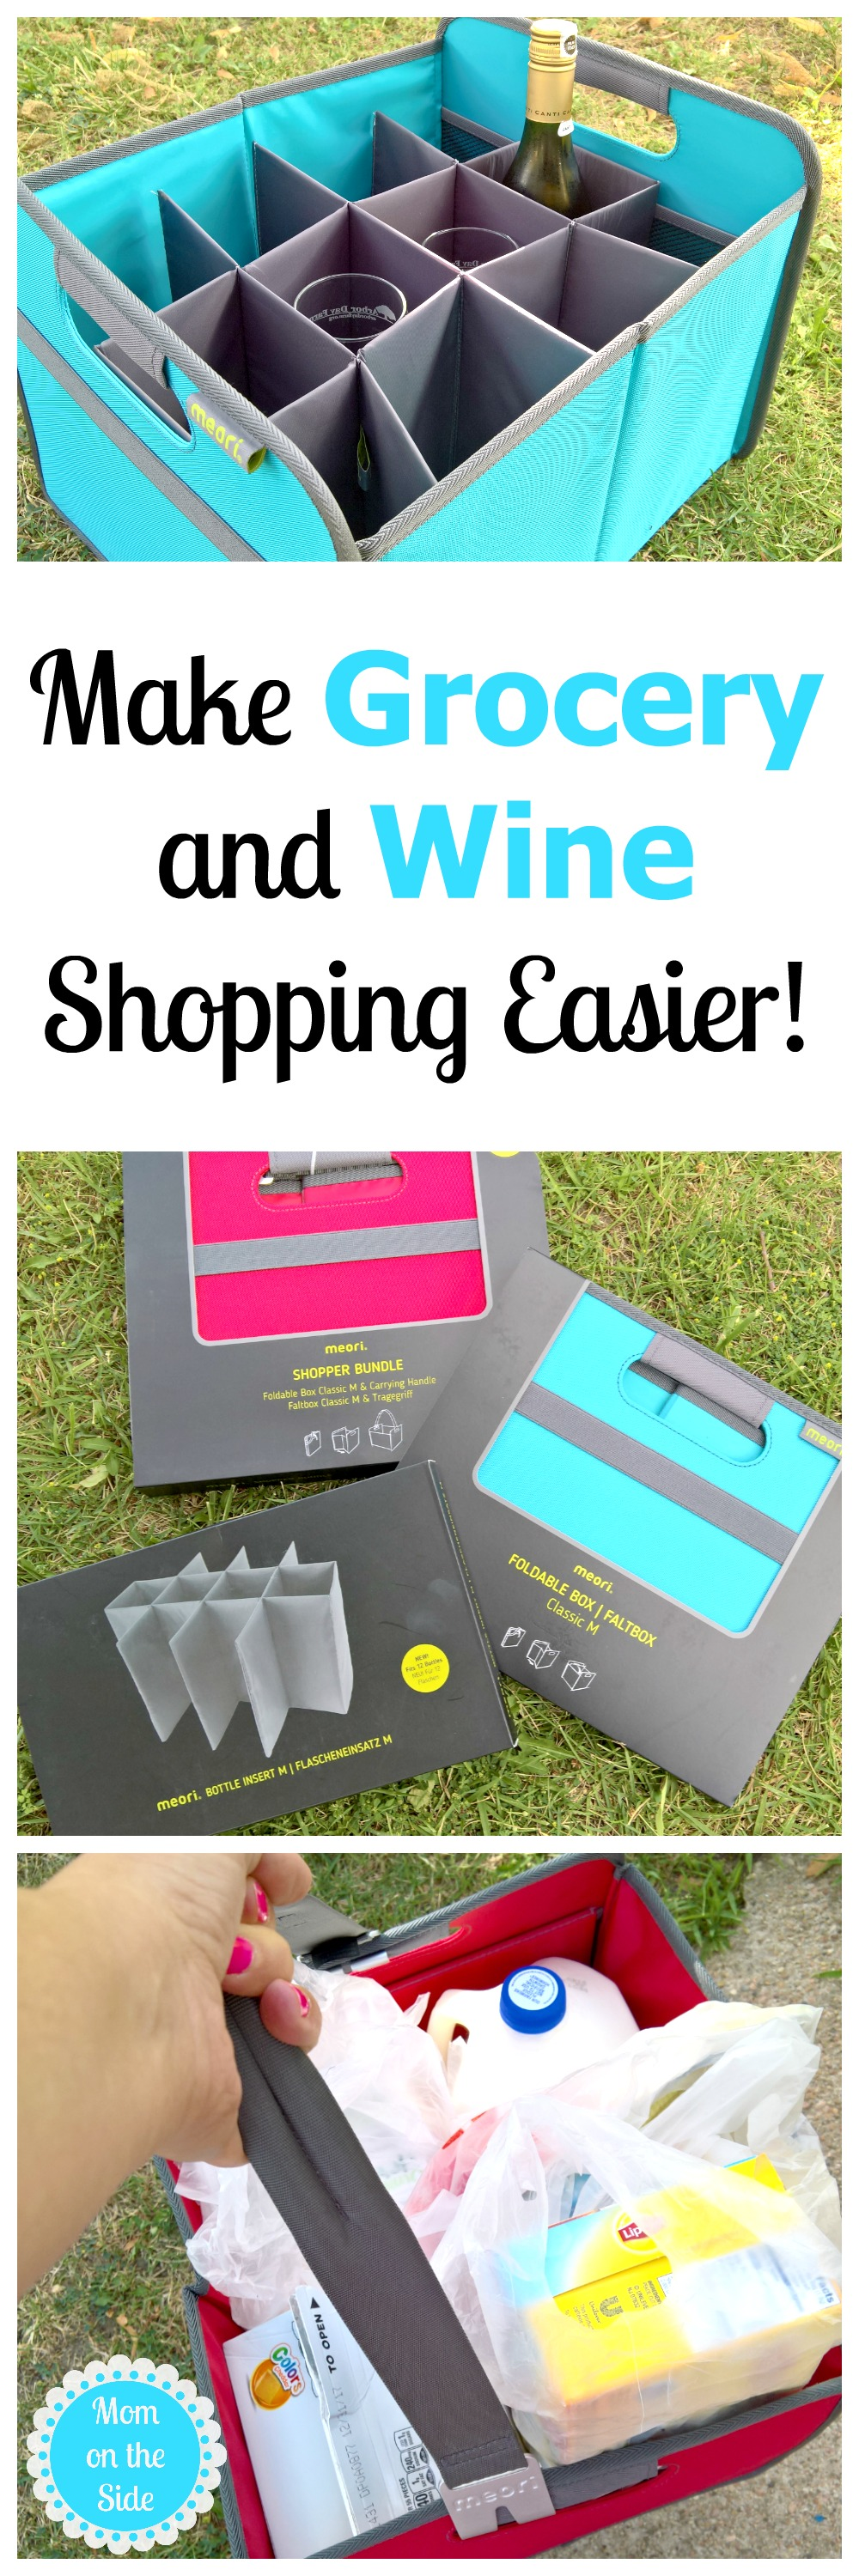 meori Wine Carrier to make shopping for wine easier